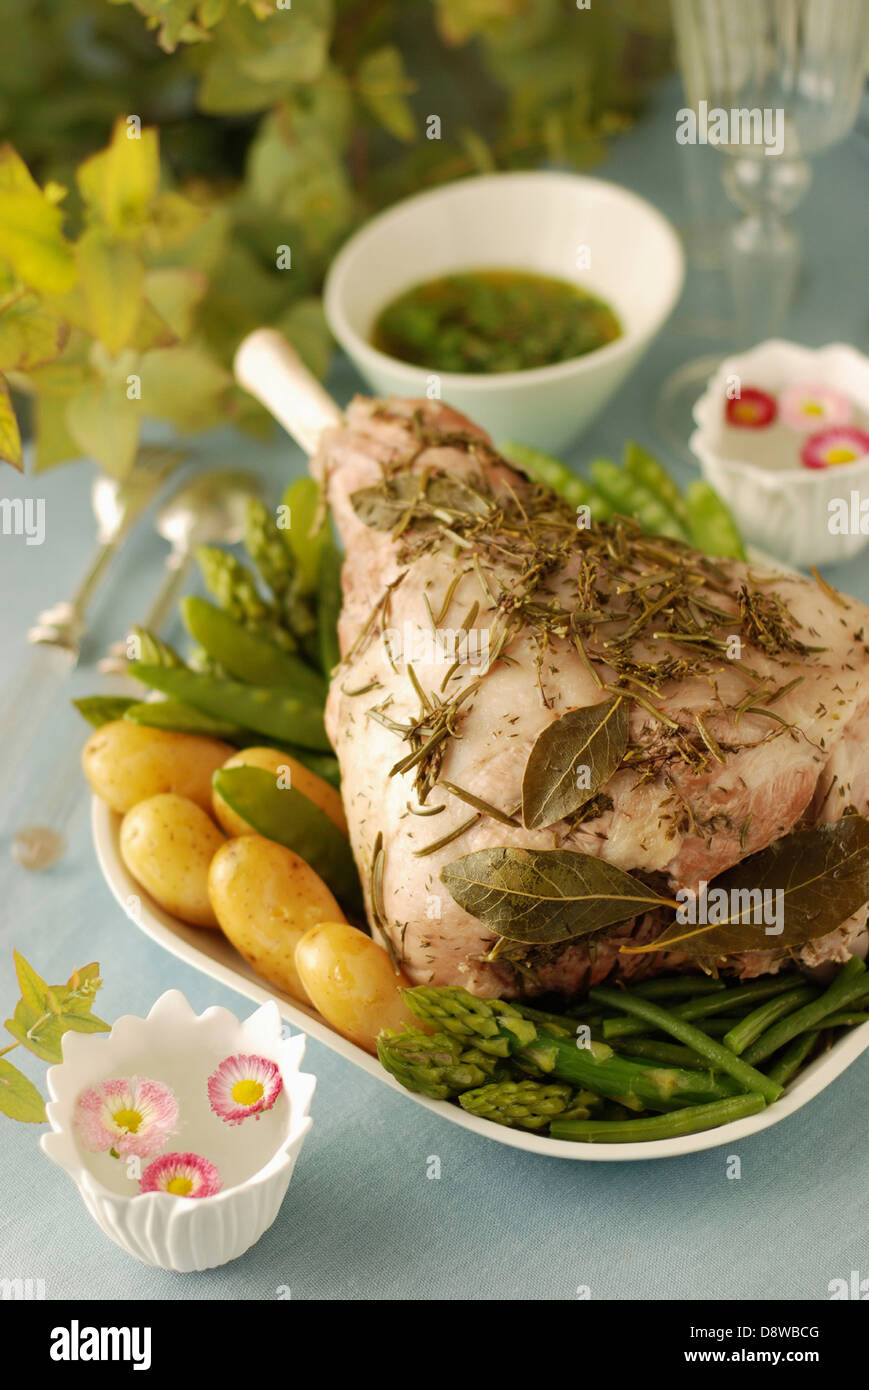 Shoulder of lamb cooked with herbs in a cloth - Stock Image